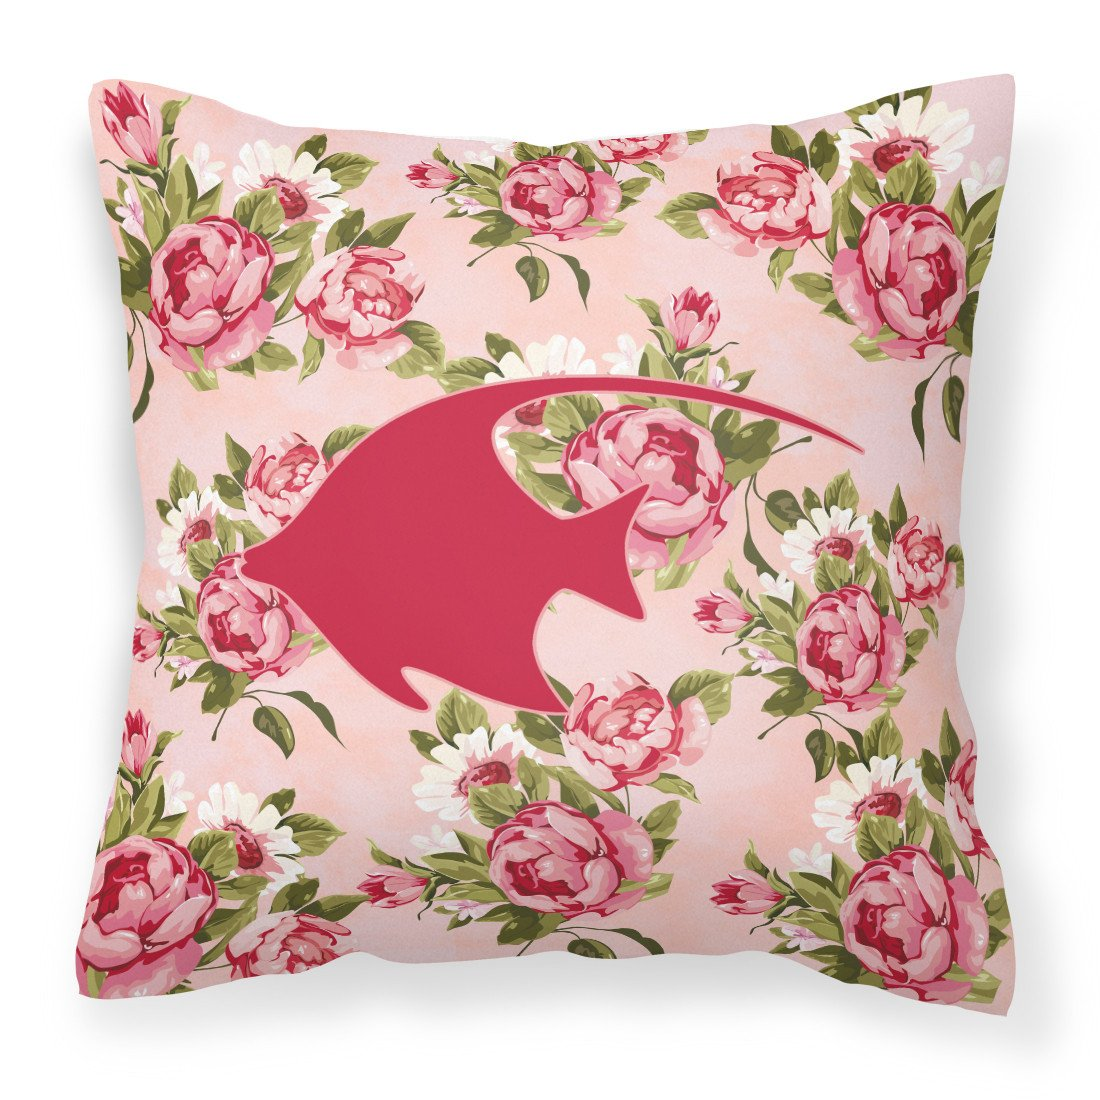 Fish - Angel Fish Shabby Chic Pink Roses  Fabric Decorative Pillow BB1019-RS-PK-PW1414 by Caroline's Treasures